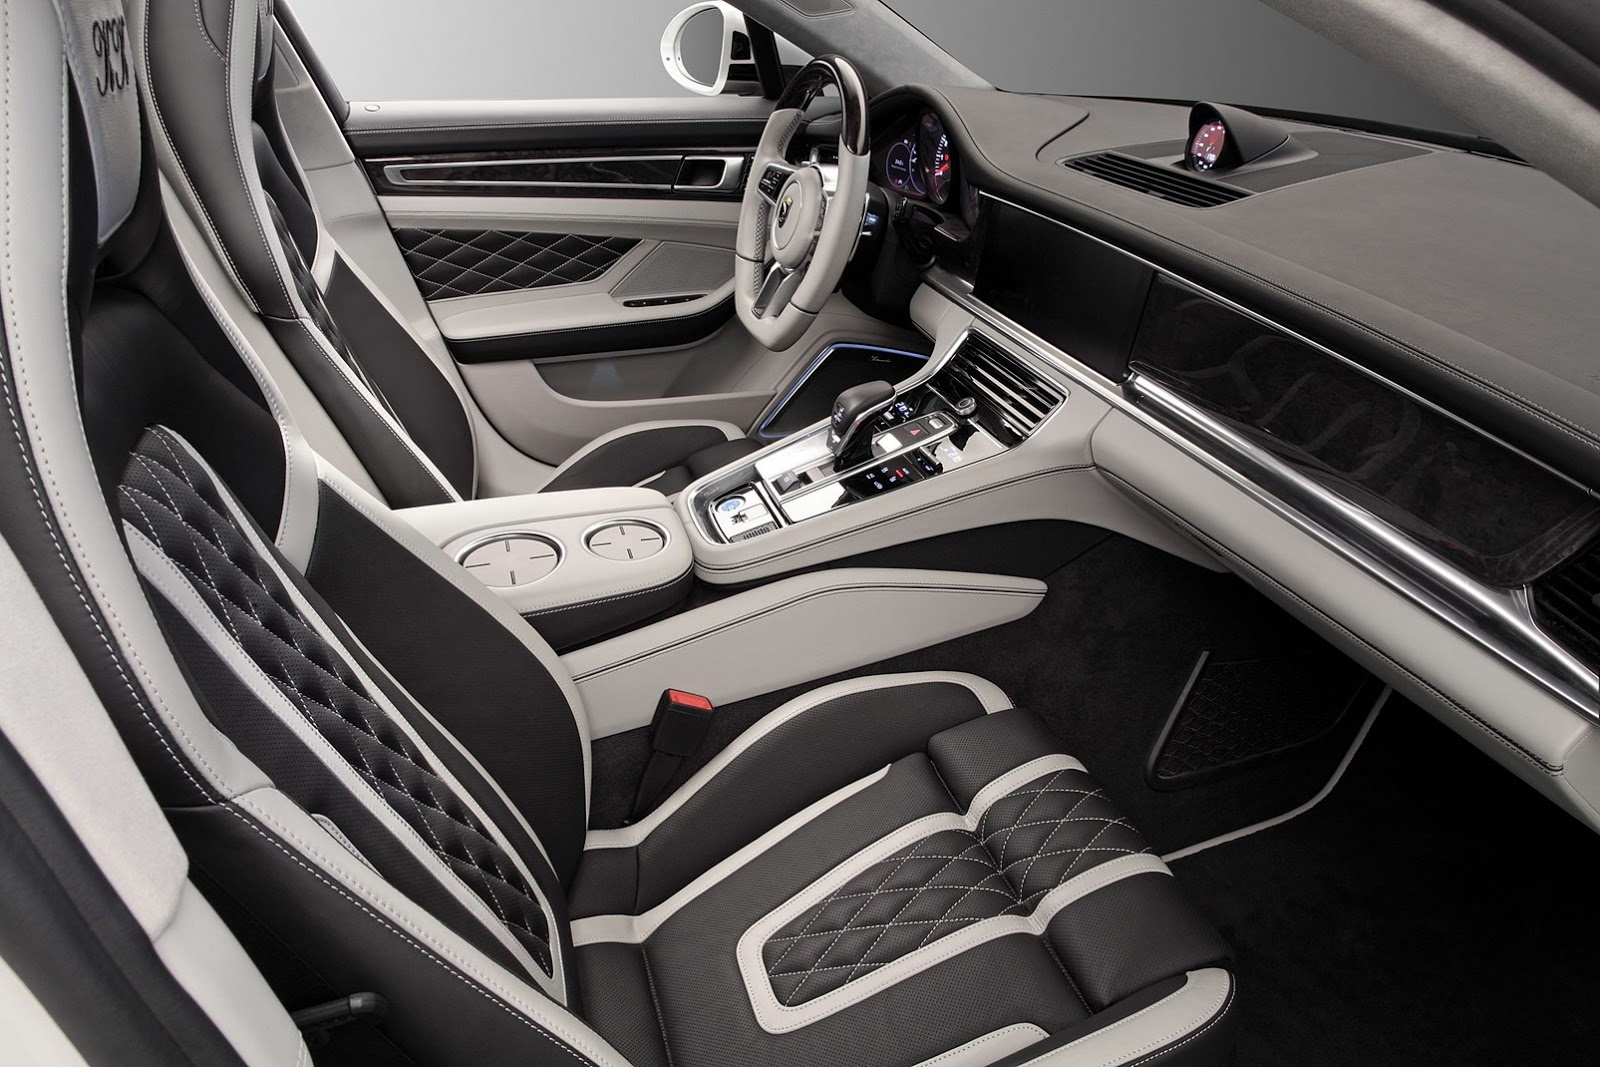 topcar-panamera-new-interior-3